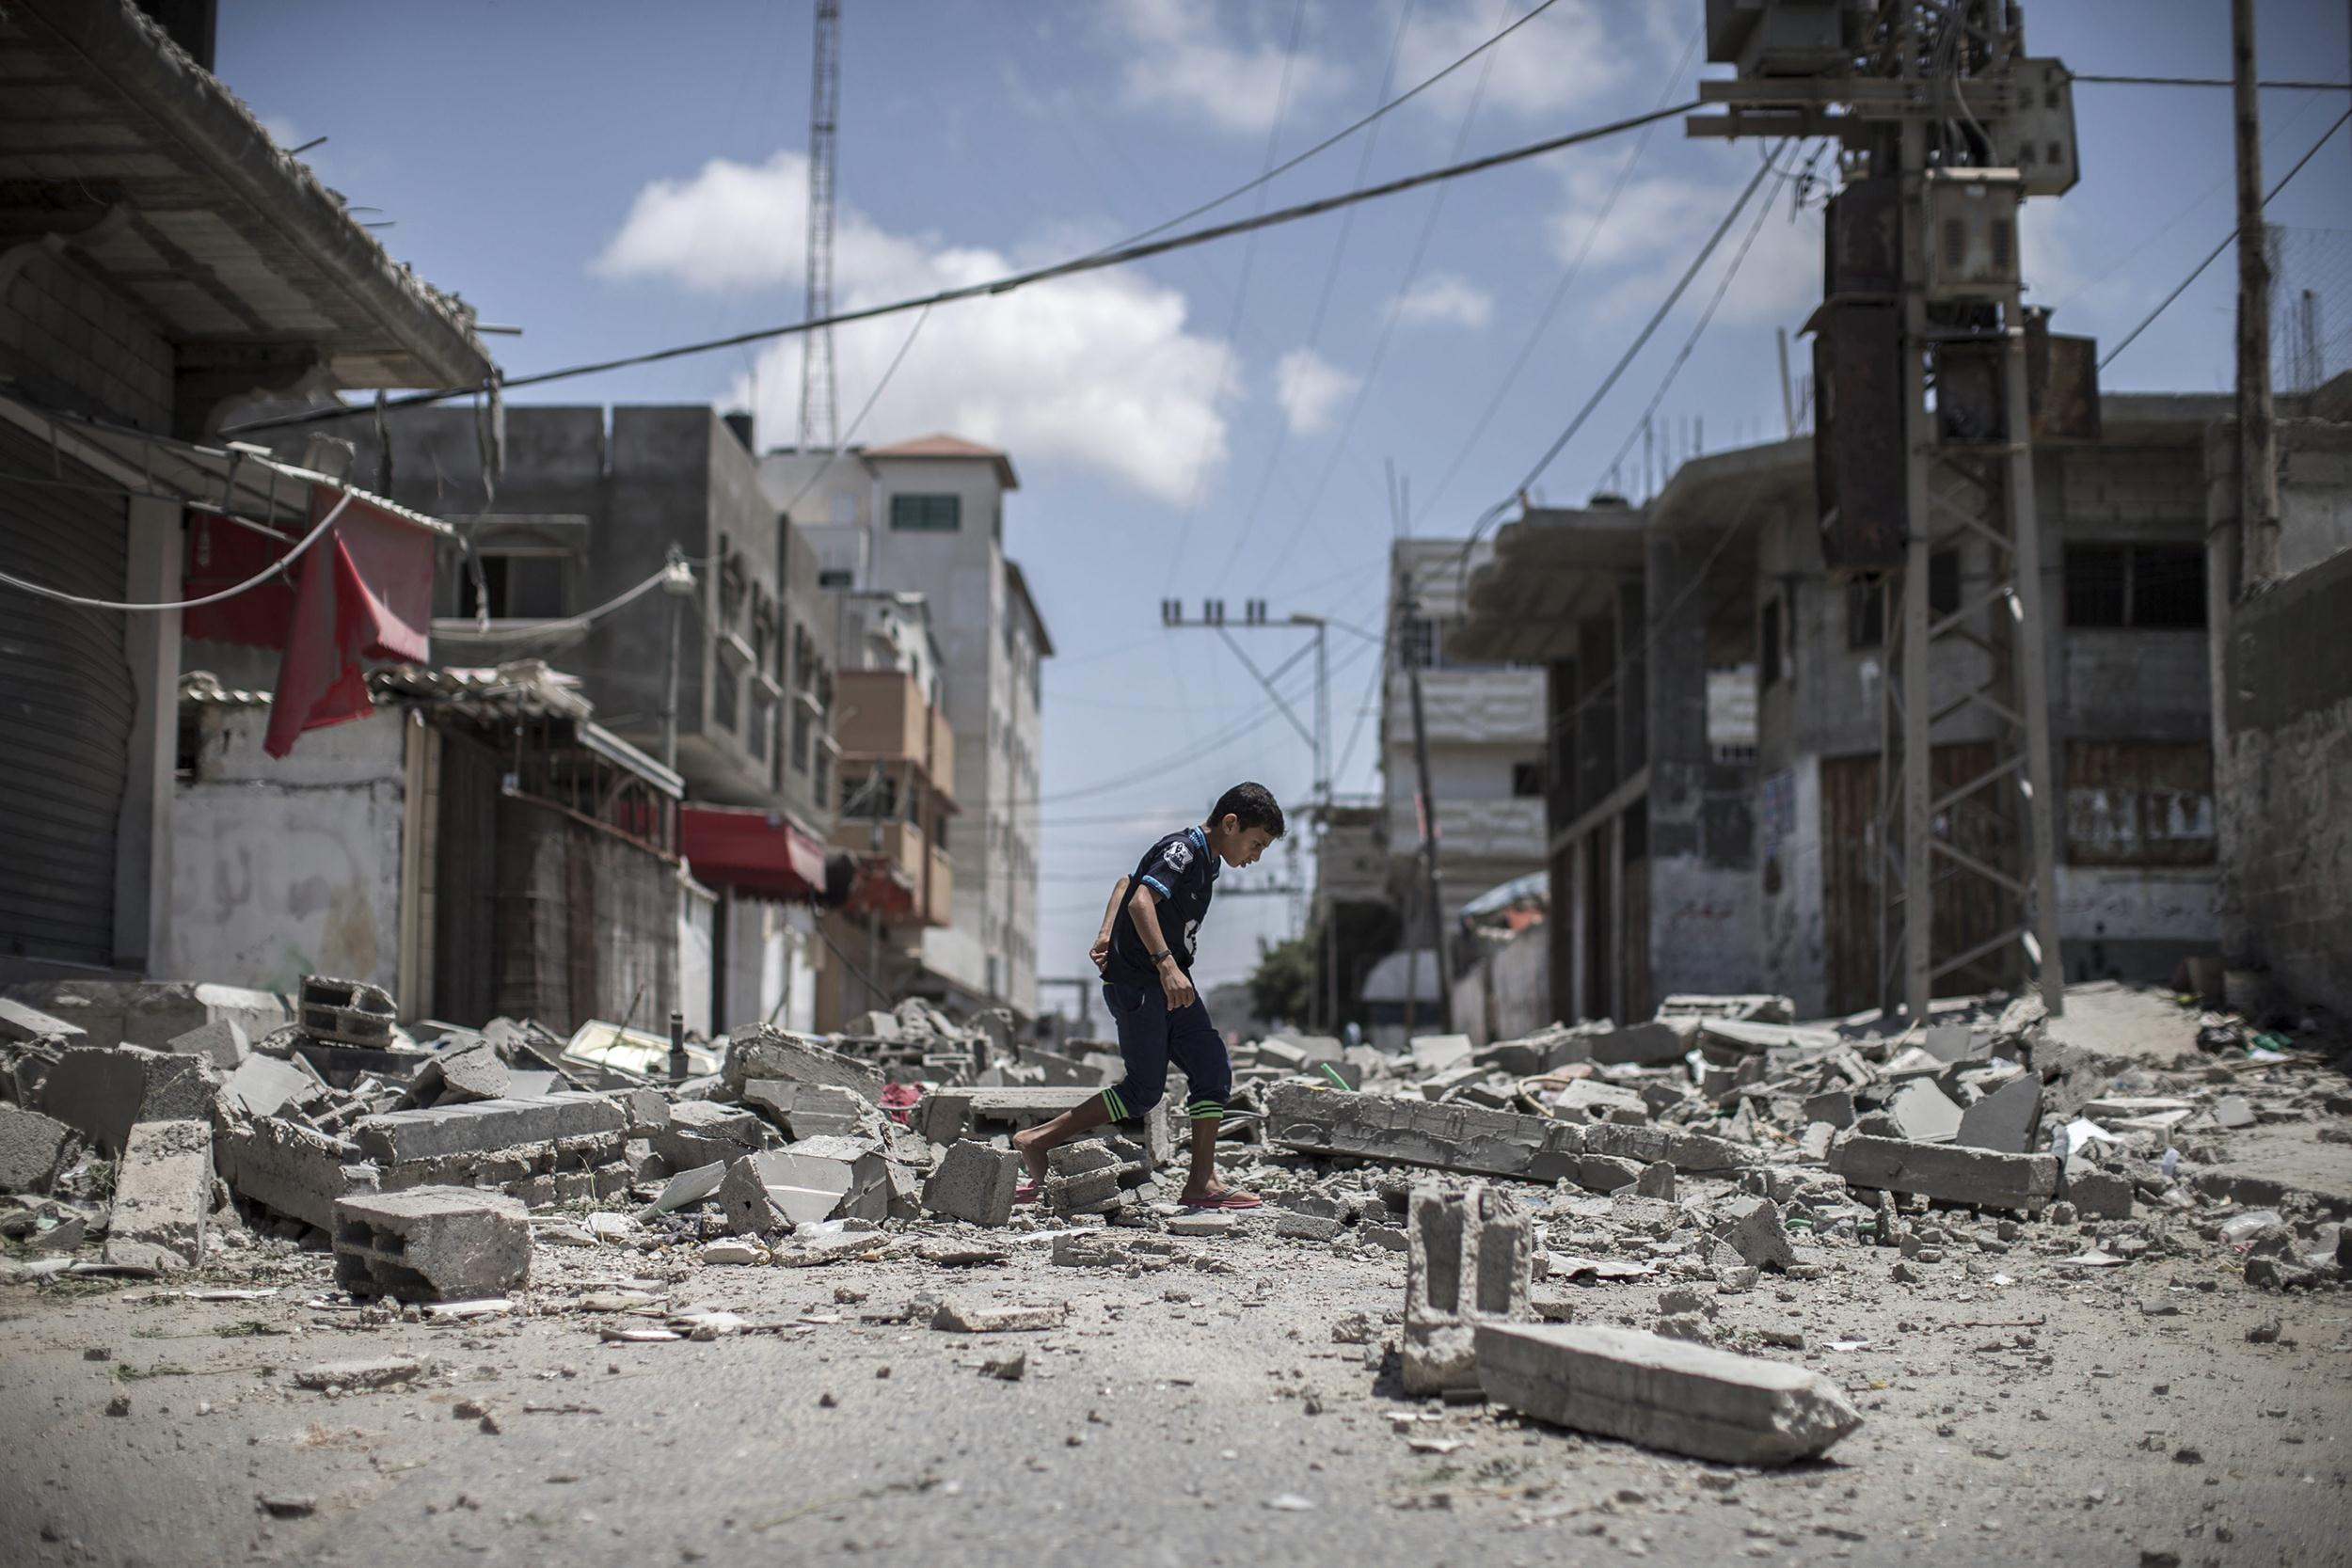 Image: A young Palestinian boy walks over debris from a house that was destroyed overnight in an airstrike in Deir Al Balah, central Gaza Strip, on July 14